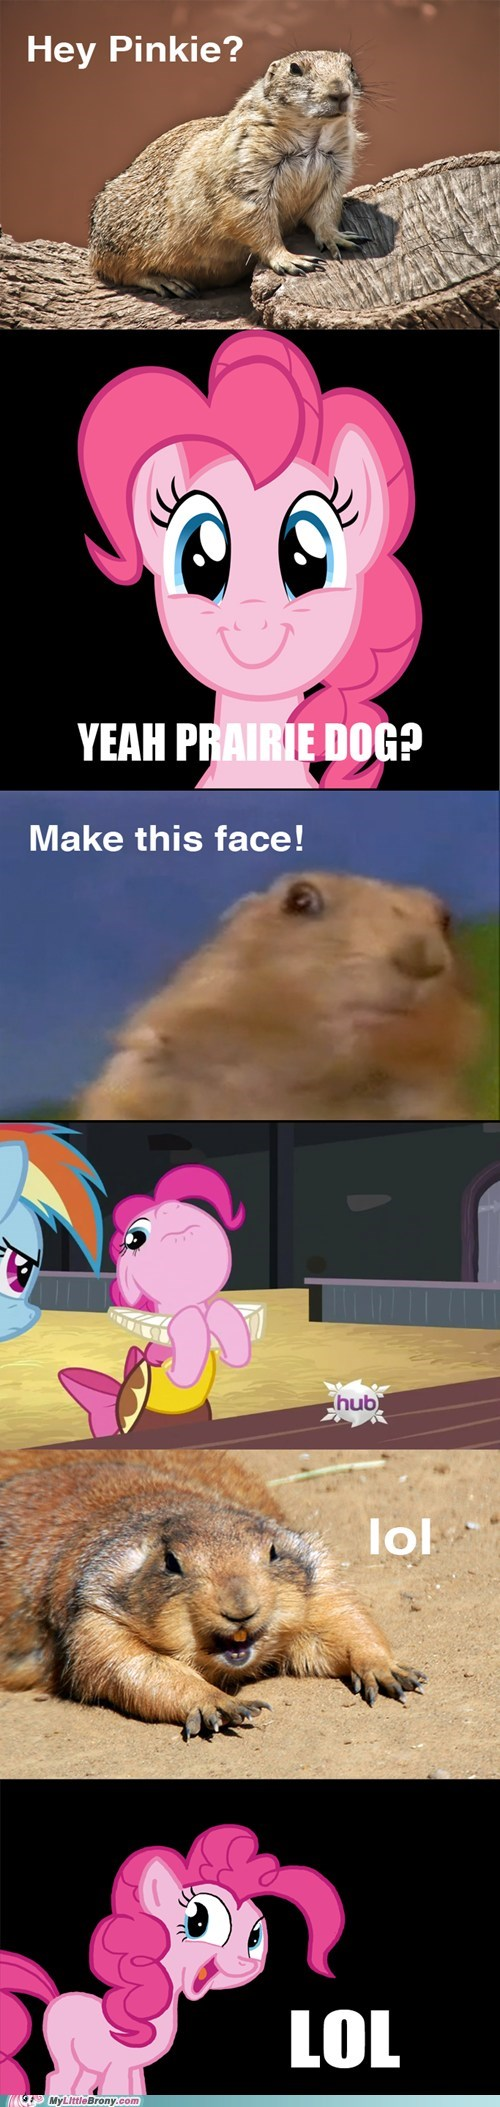 best of week comics i-dunno-lol-prairie-dog pinkie pie - 5581476864